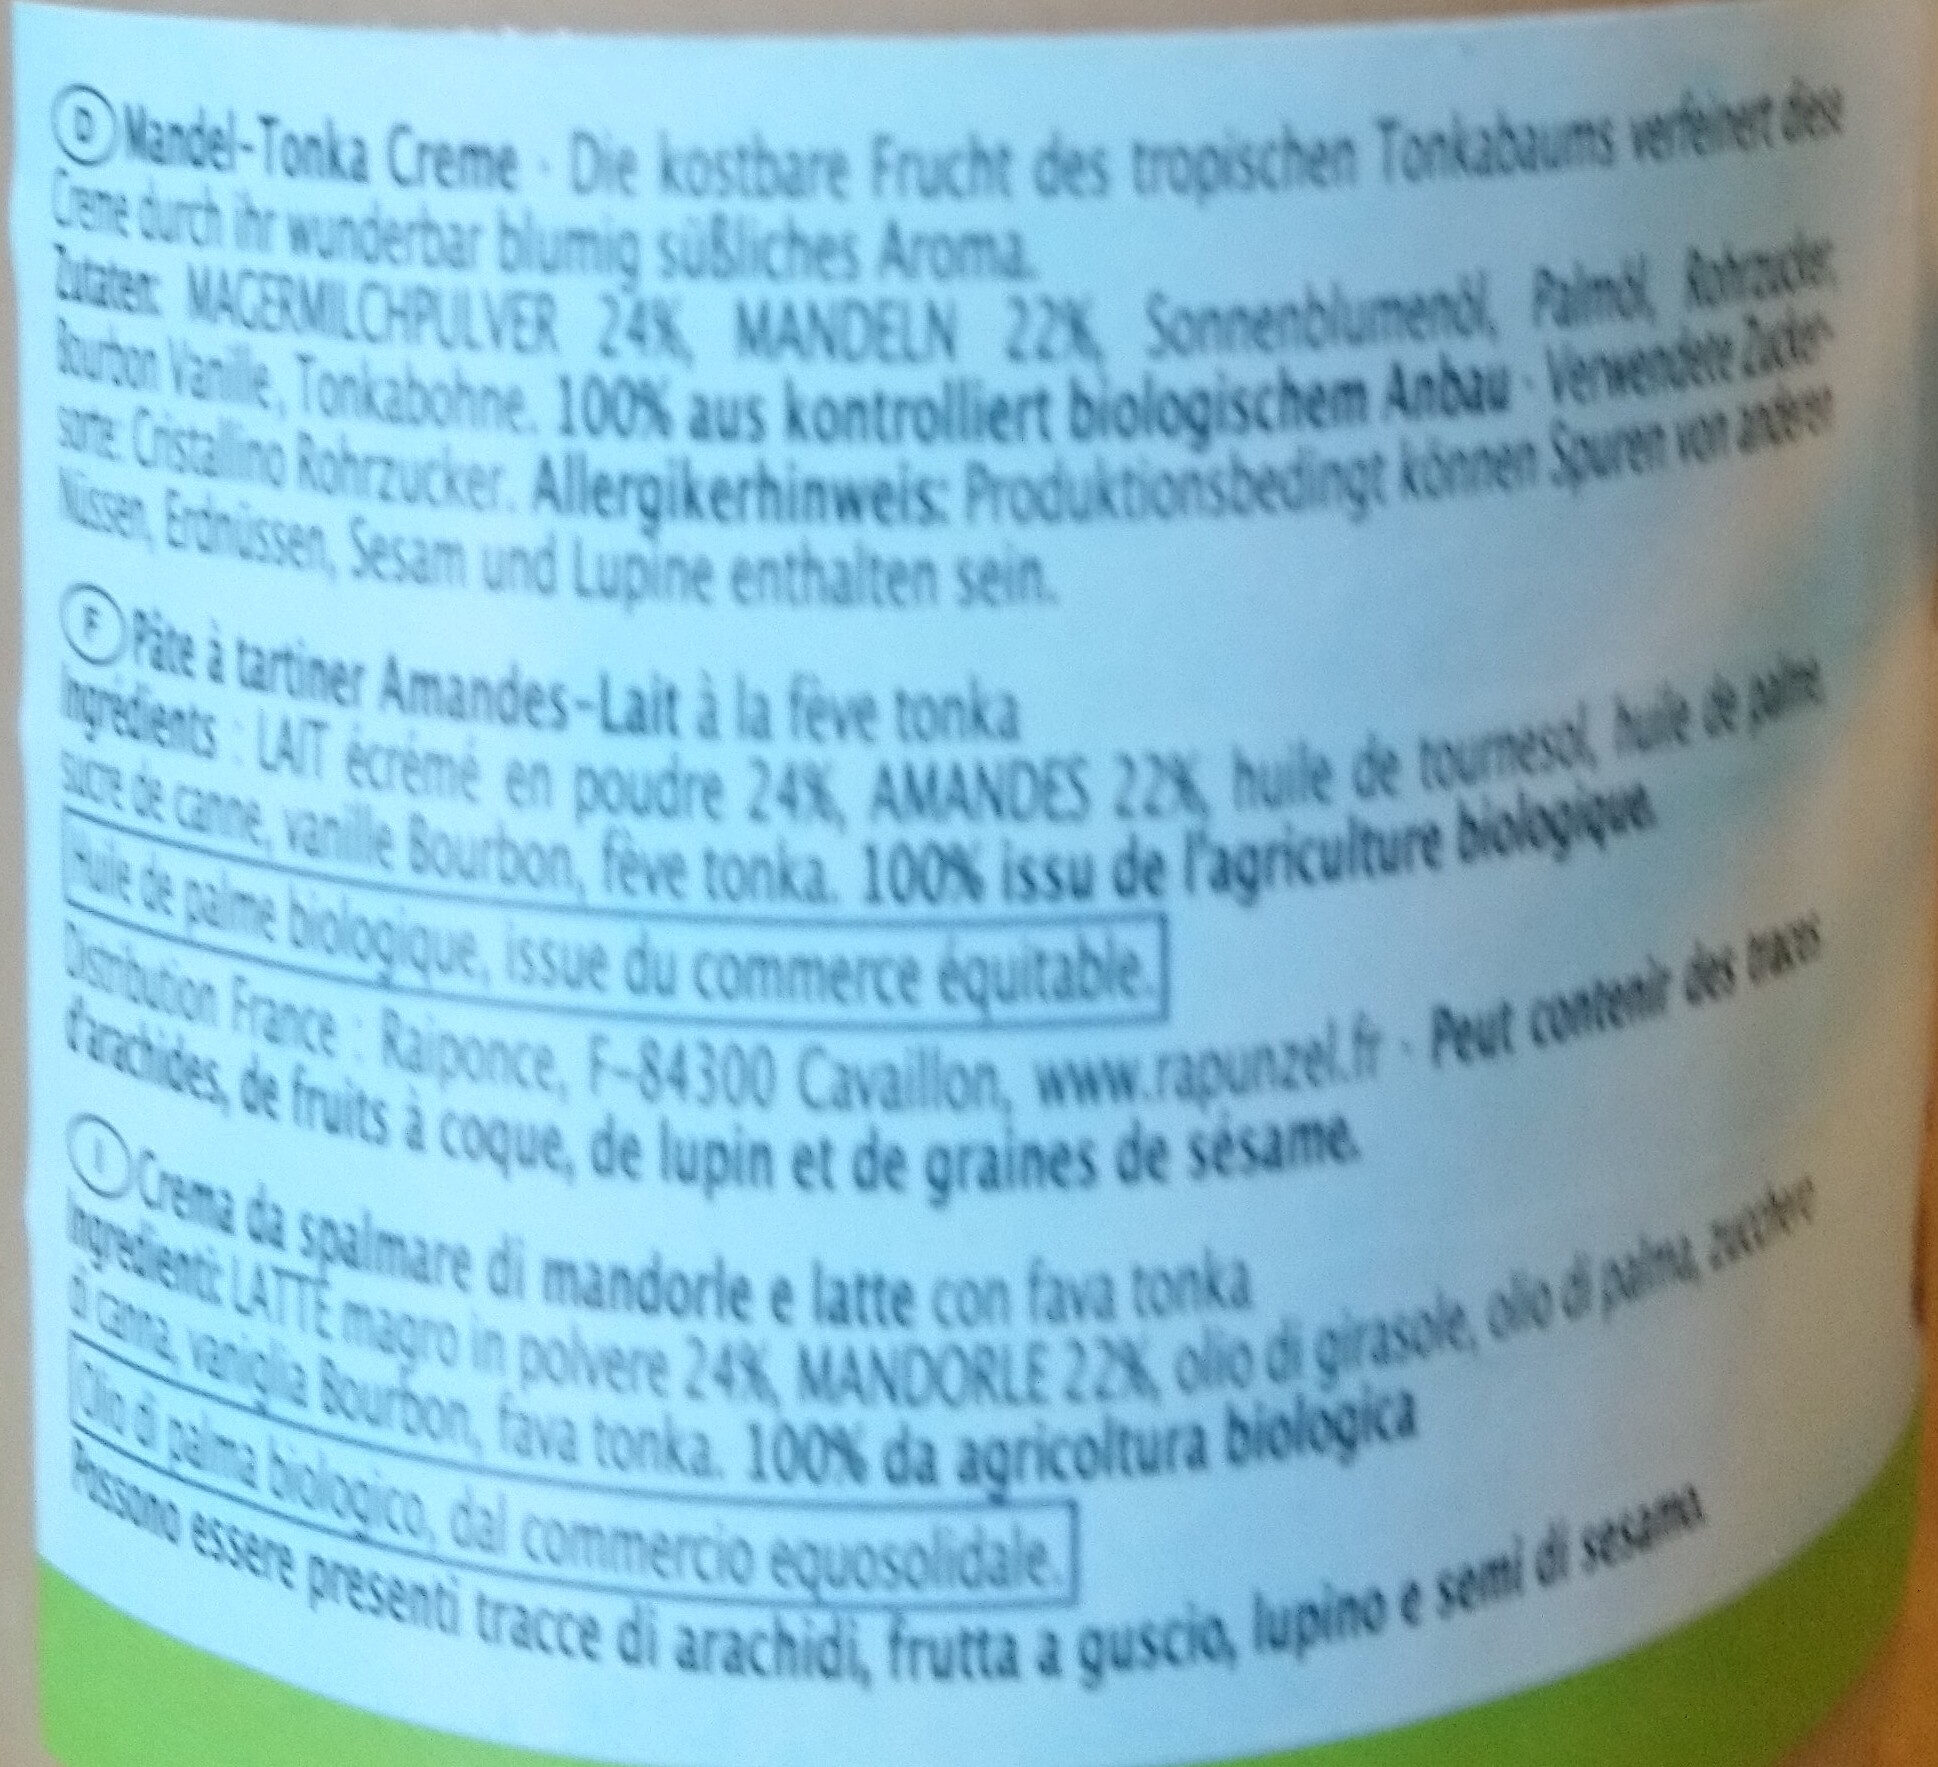 Mandel-Tonka Creme - Ingredients